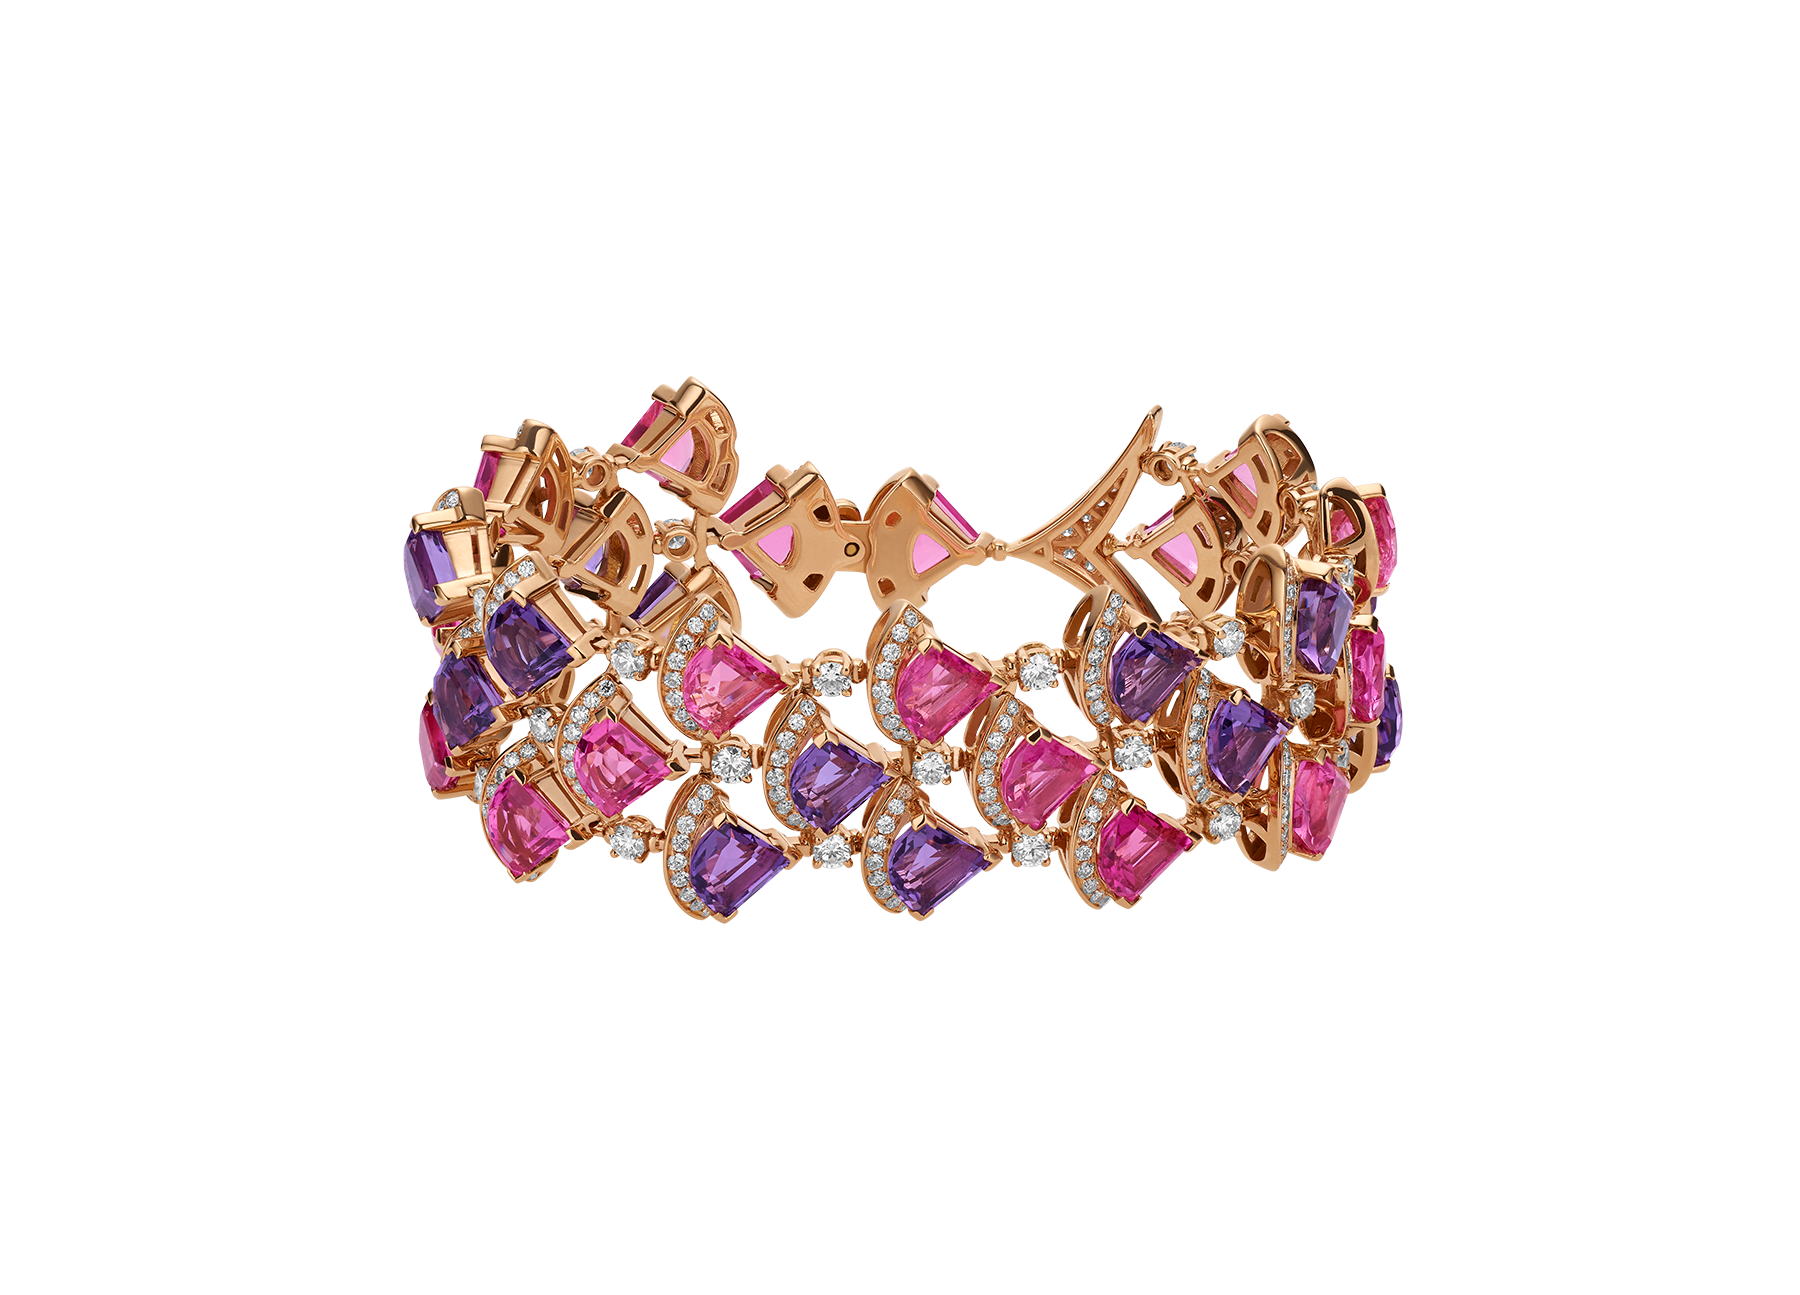 DIVAS' DREAM bracelet in 18 kt rose gold, set with pink rubellite, amethyst and pavé diamonds. BR858025 image 2